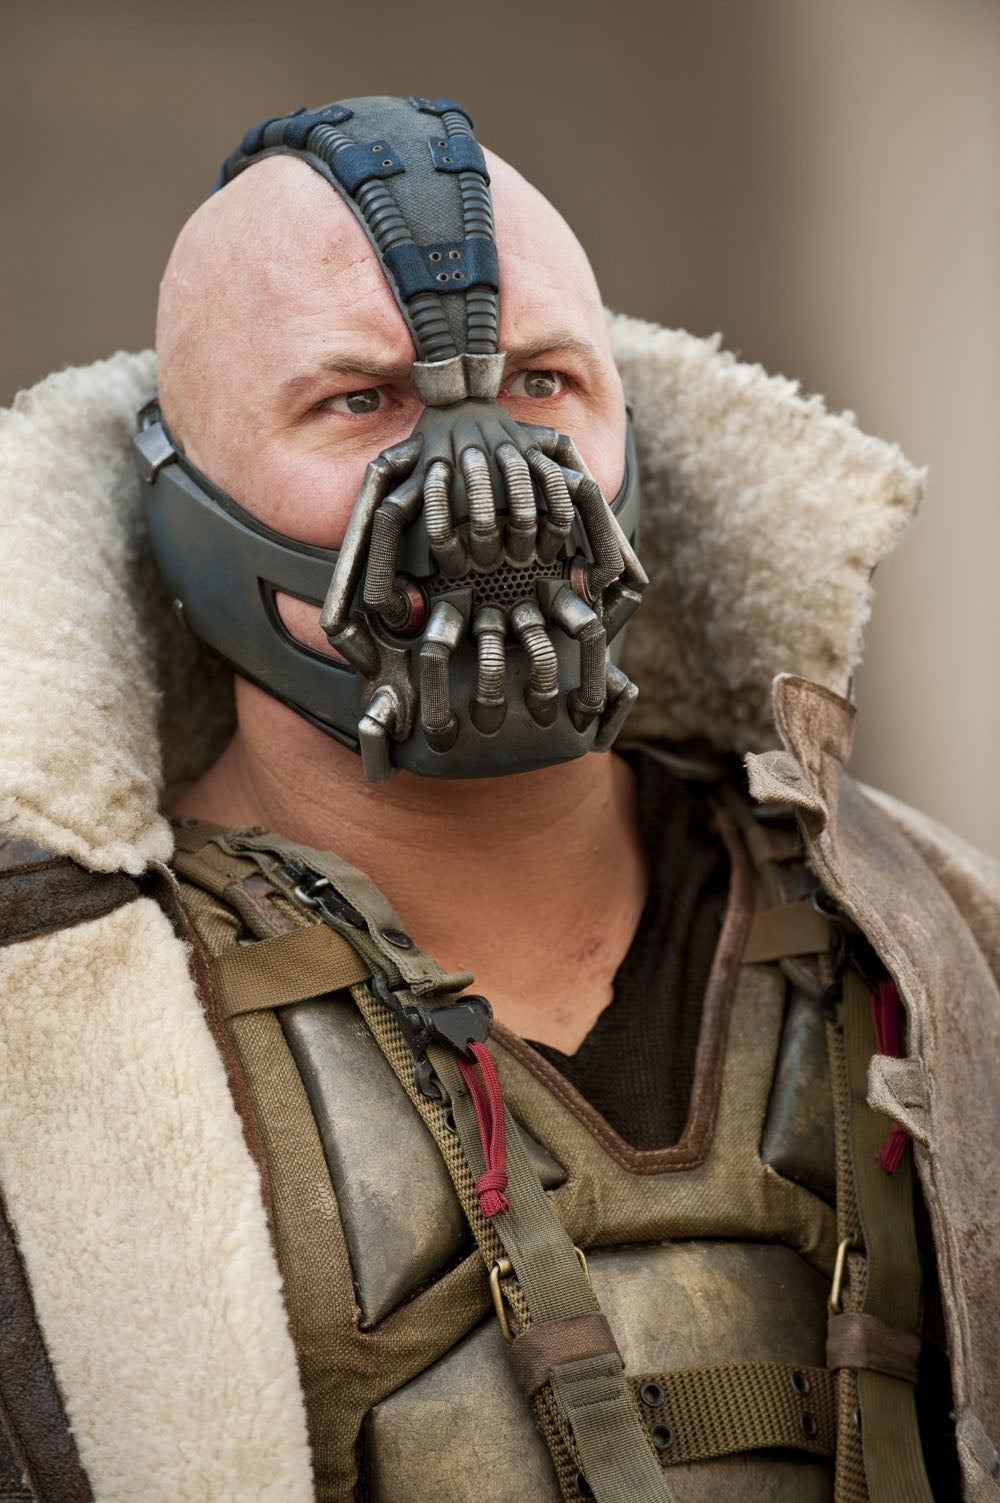 exclusive-image-of-tom-hardy-as-bane-in-the-dark-knight-rises-102438-00-1000-100